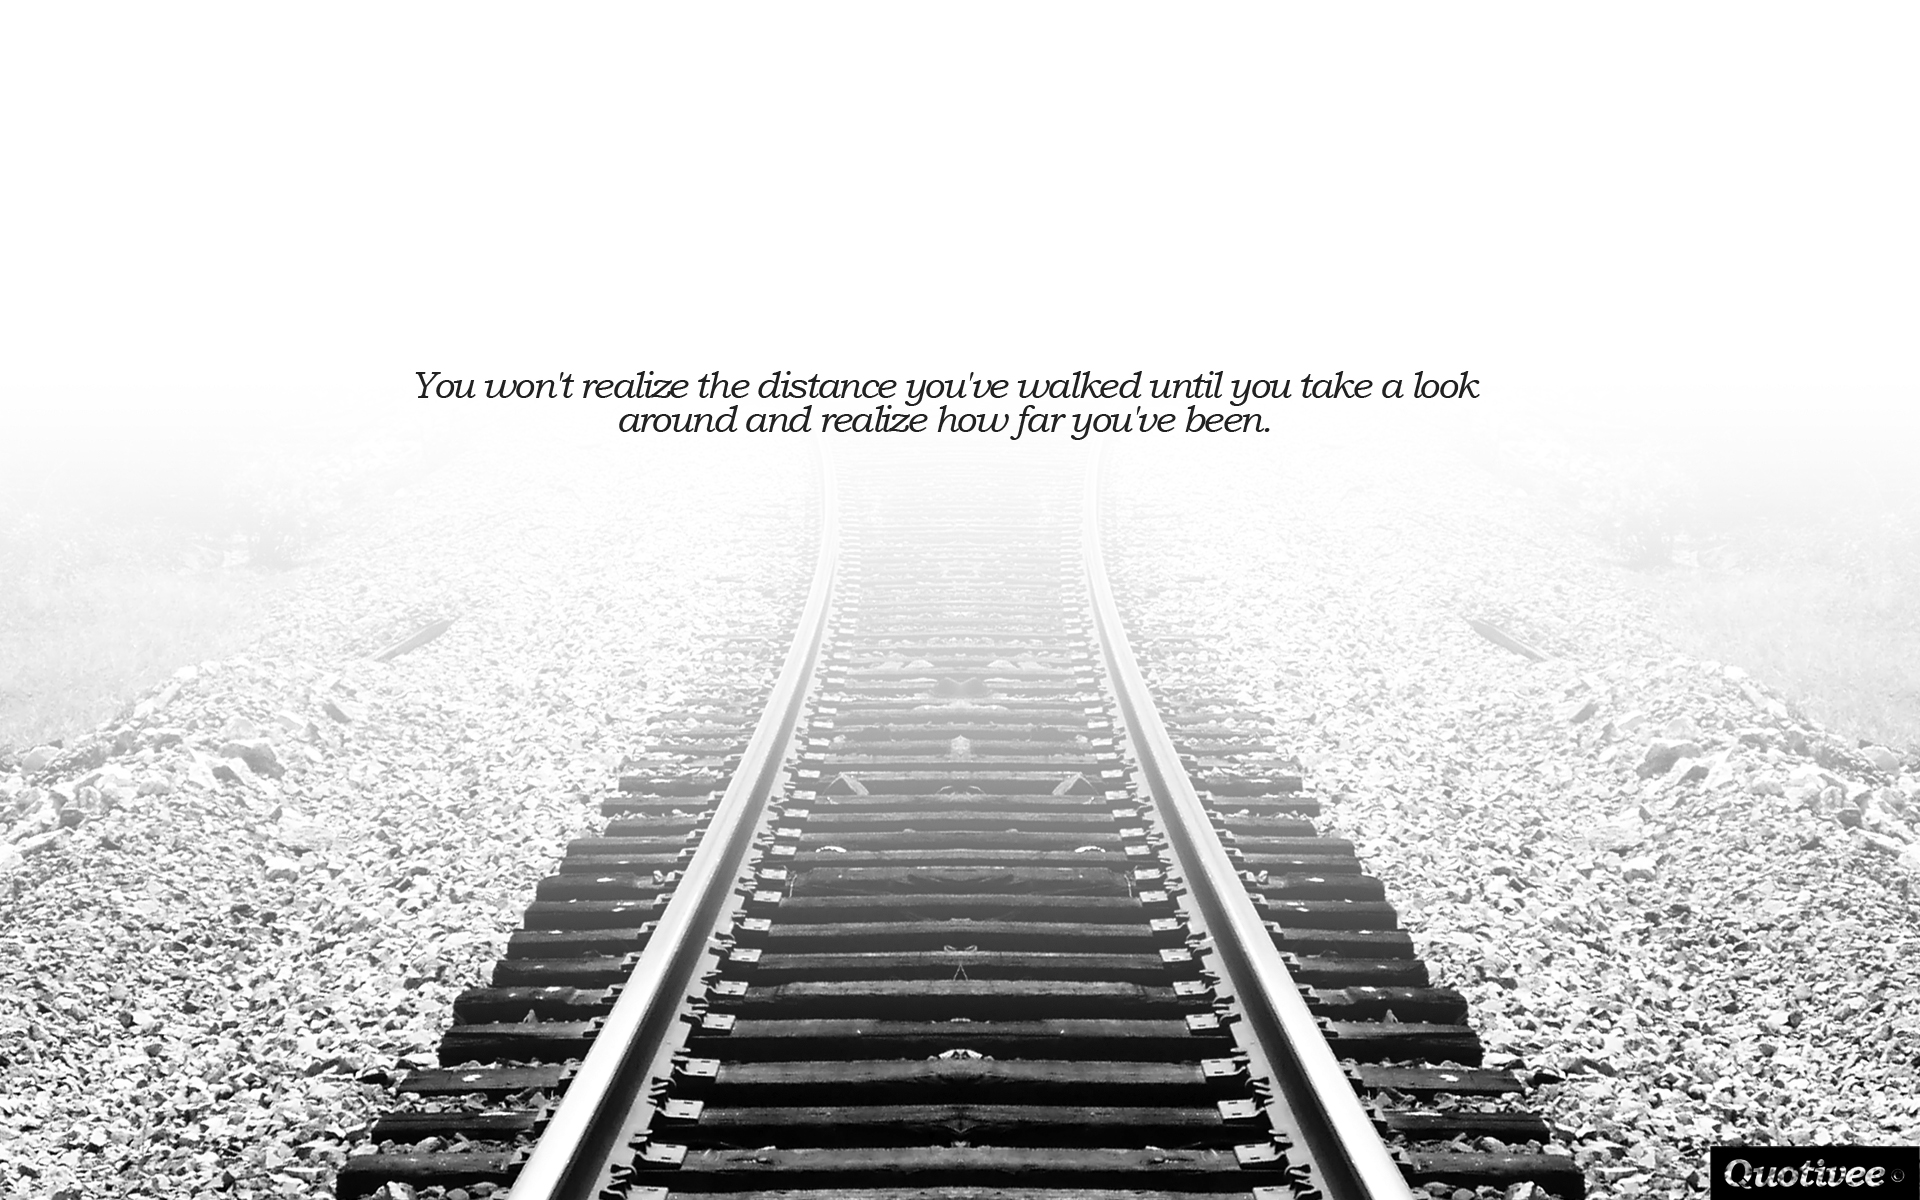 Mobile Wallpapers Quotes On Life The Distance You Ve Walked Inspirational Quotes Quotivee